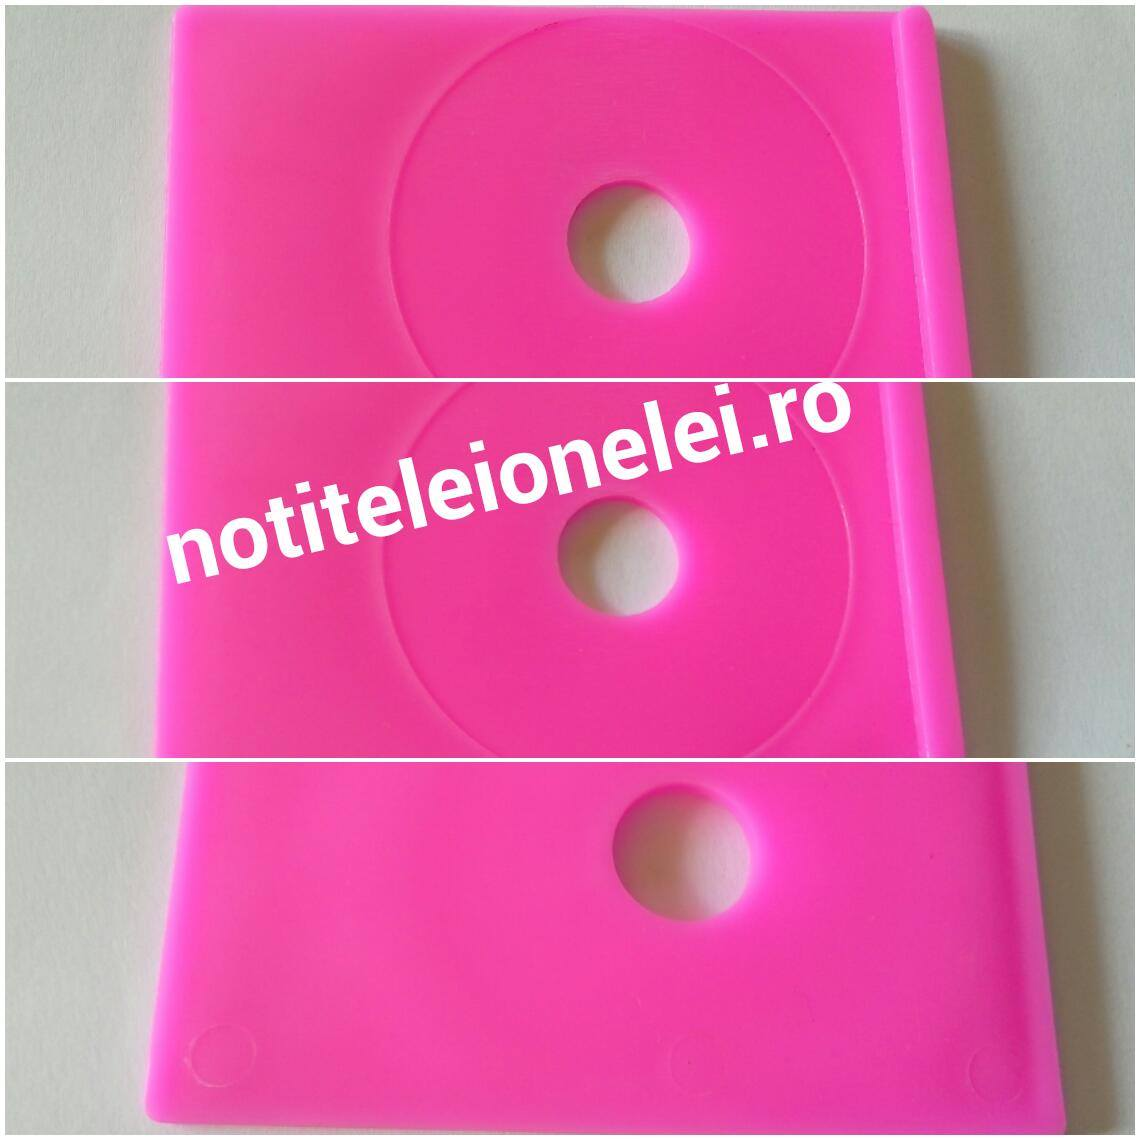 DANCINGNAIL Pink Plastic Nail Stamping Image Template Printing Plate Holder Stand Tray newchic